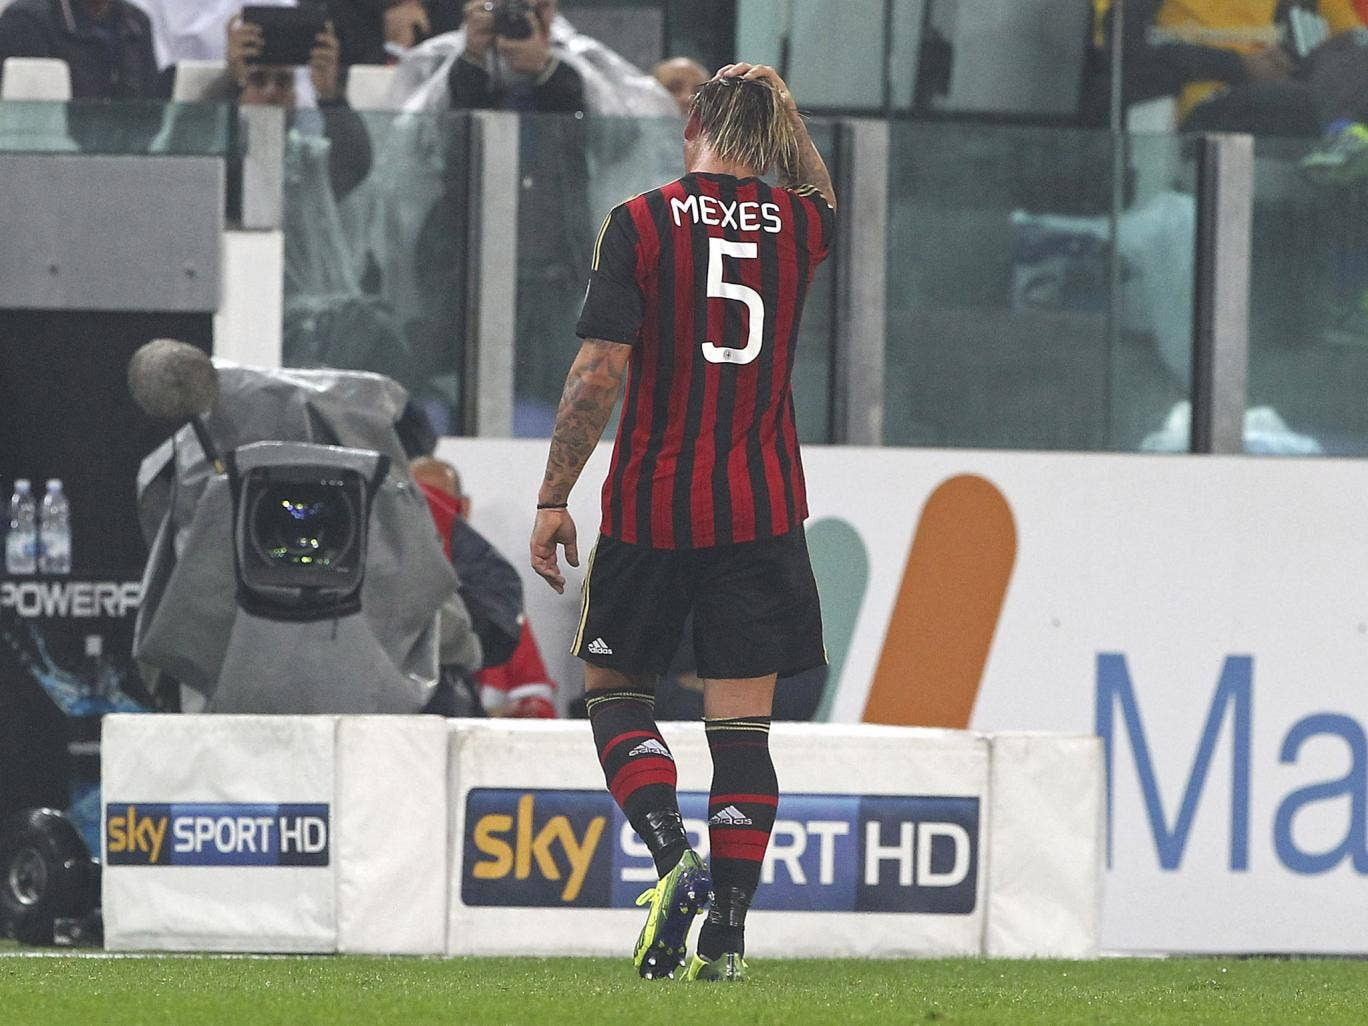 Philippe Mexes walks after bring shown a red card